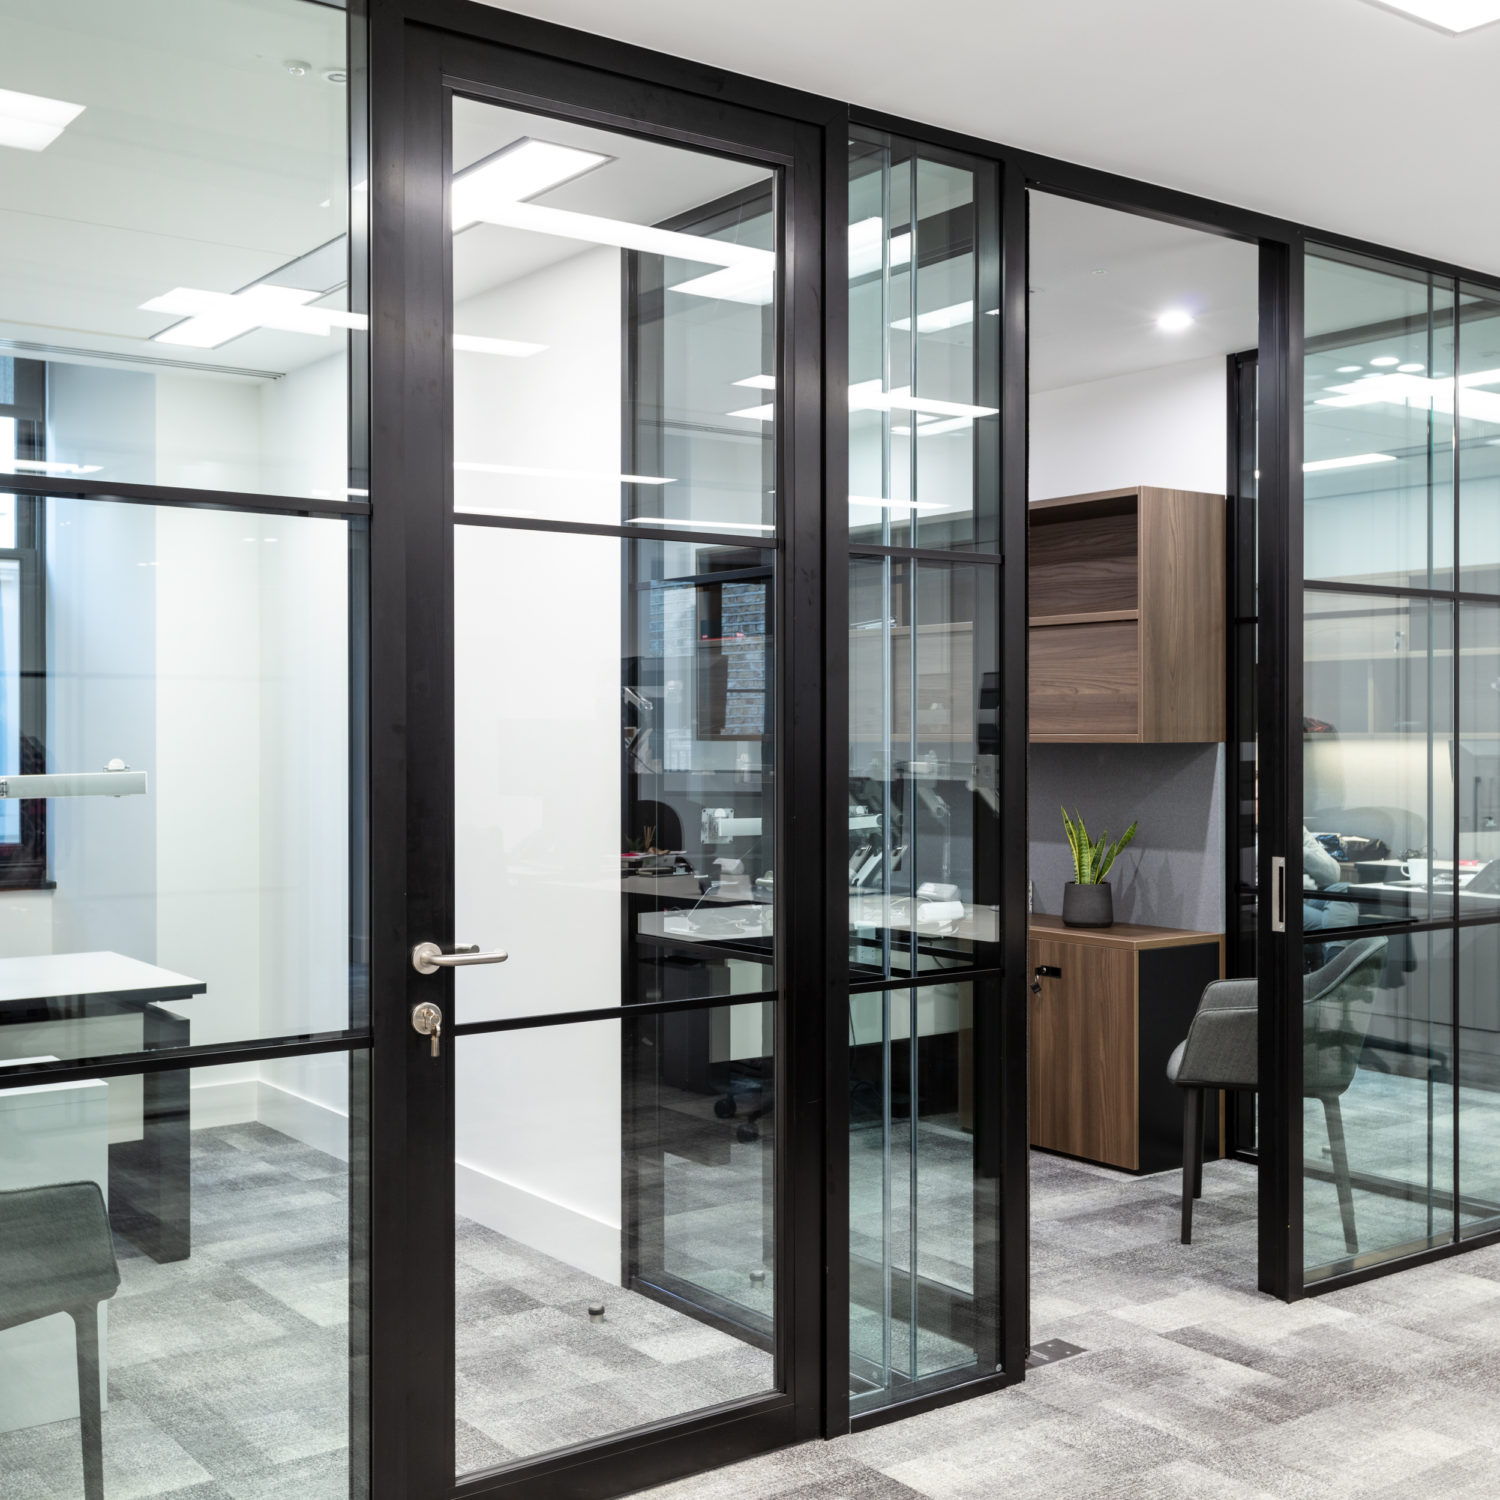 Private offices with a minimal clean timeless aesthetic